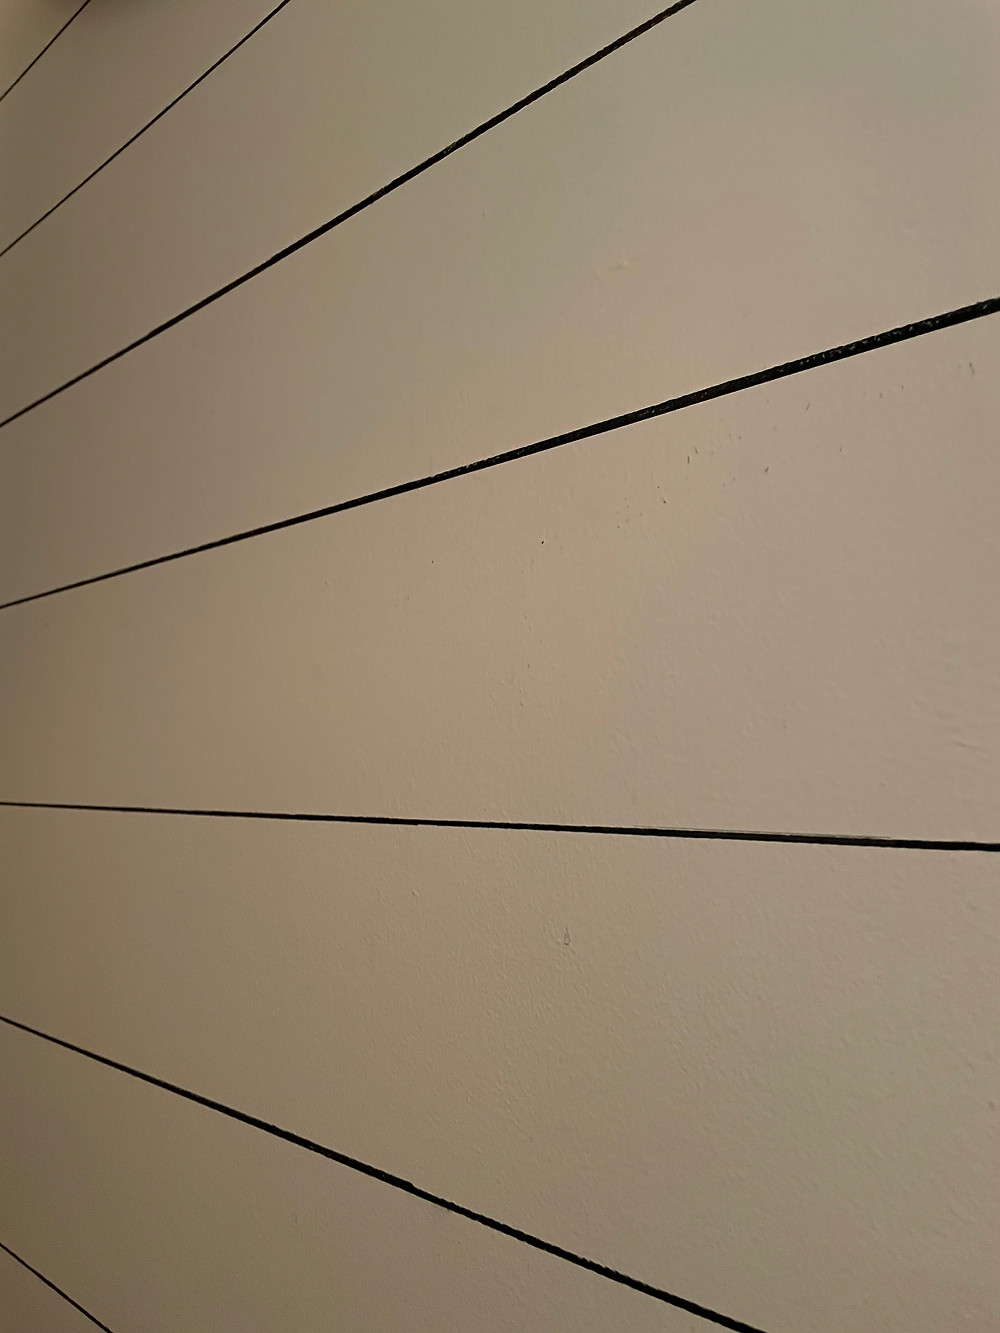 Image of Sharpie Shiplap at an angle showing real glance